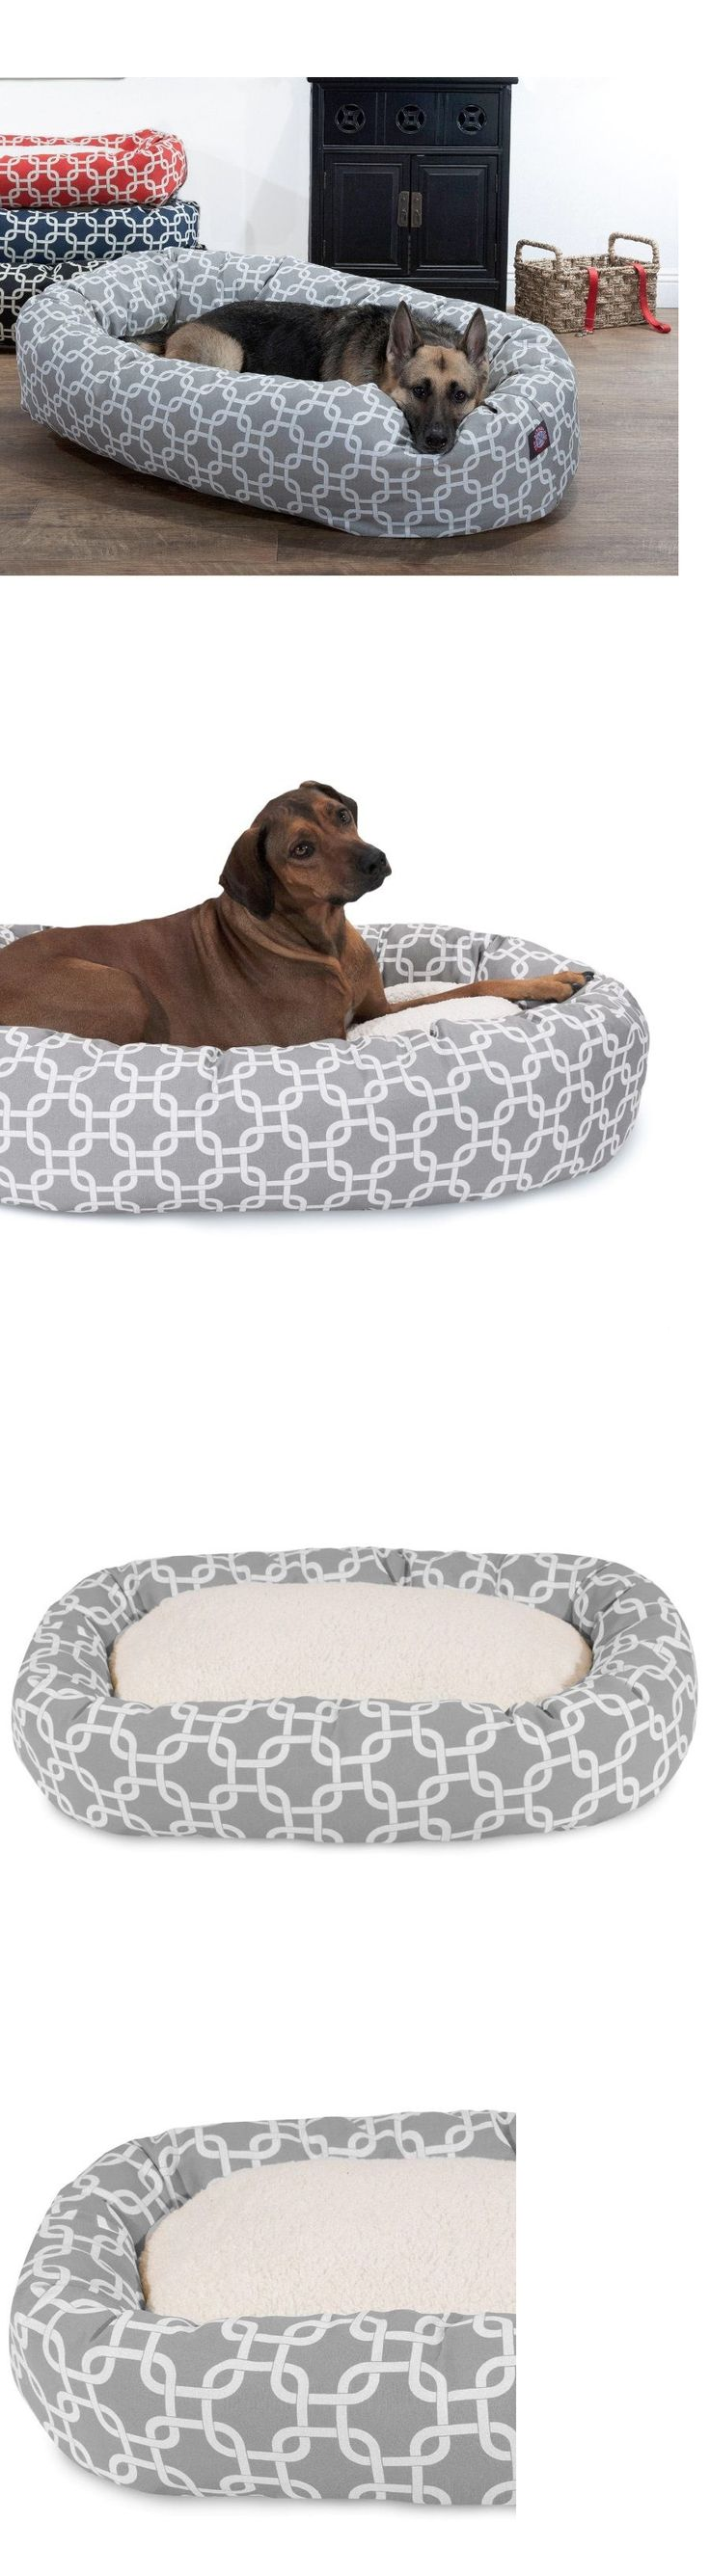 Beds 20744: Great Dane Dog Bed Extra Large Washable Xl Pet Huge Bolster Bagel Sherpa Gray -> BUY IT NOW ONLY: $124.95 on eBay!